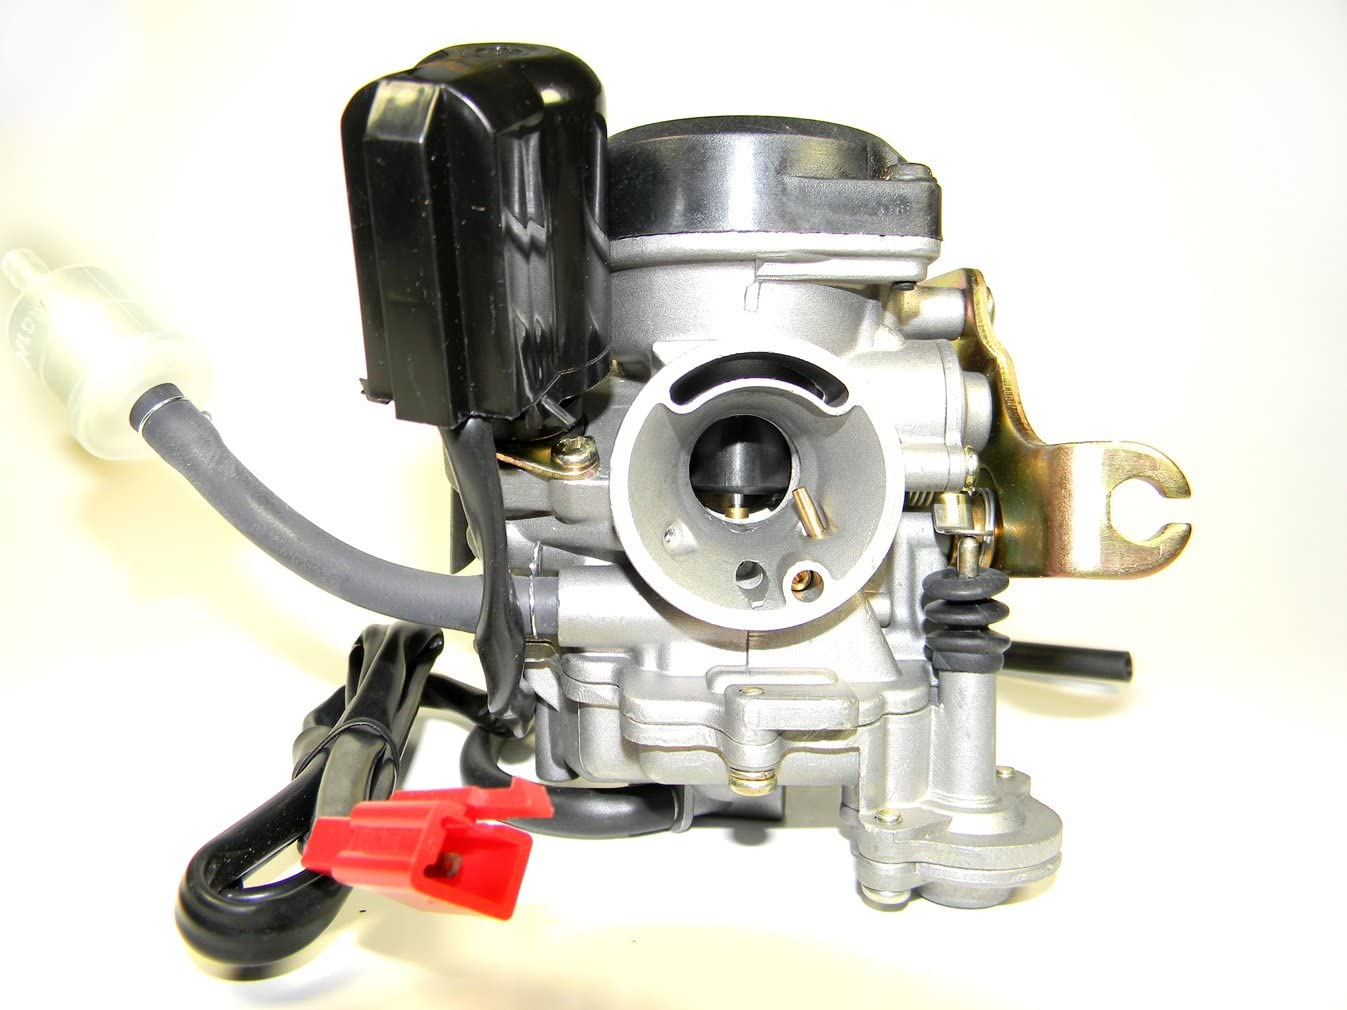 50cc Scooter Carburetor designed specifically for GY6 QMB139 4-stroke scooter, ATV, and dirt bike engines